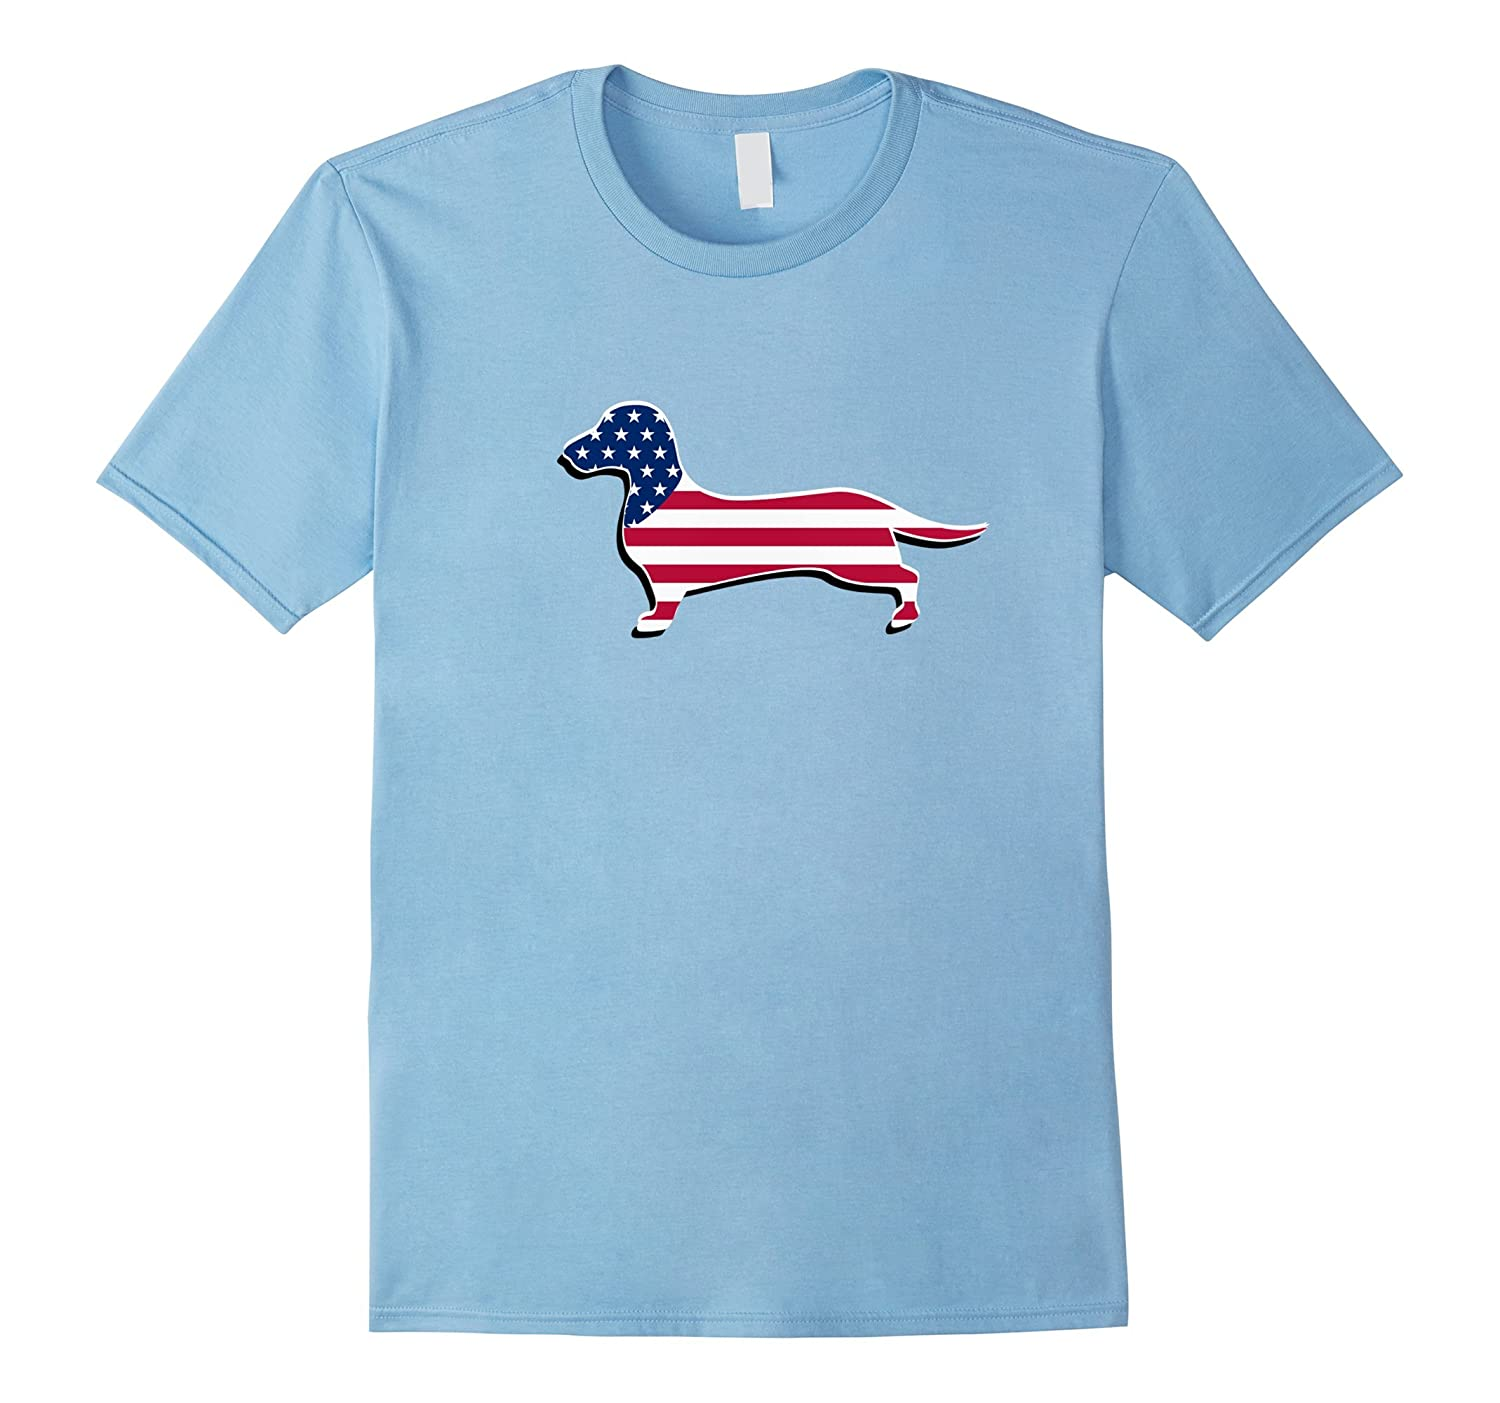 Dachshund USA Flag Shirt Funny Dog 4th of July Outfit Top